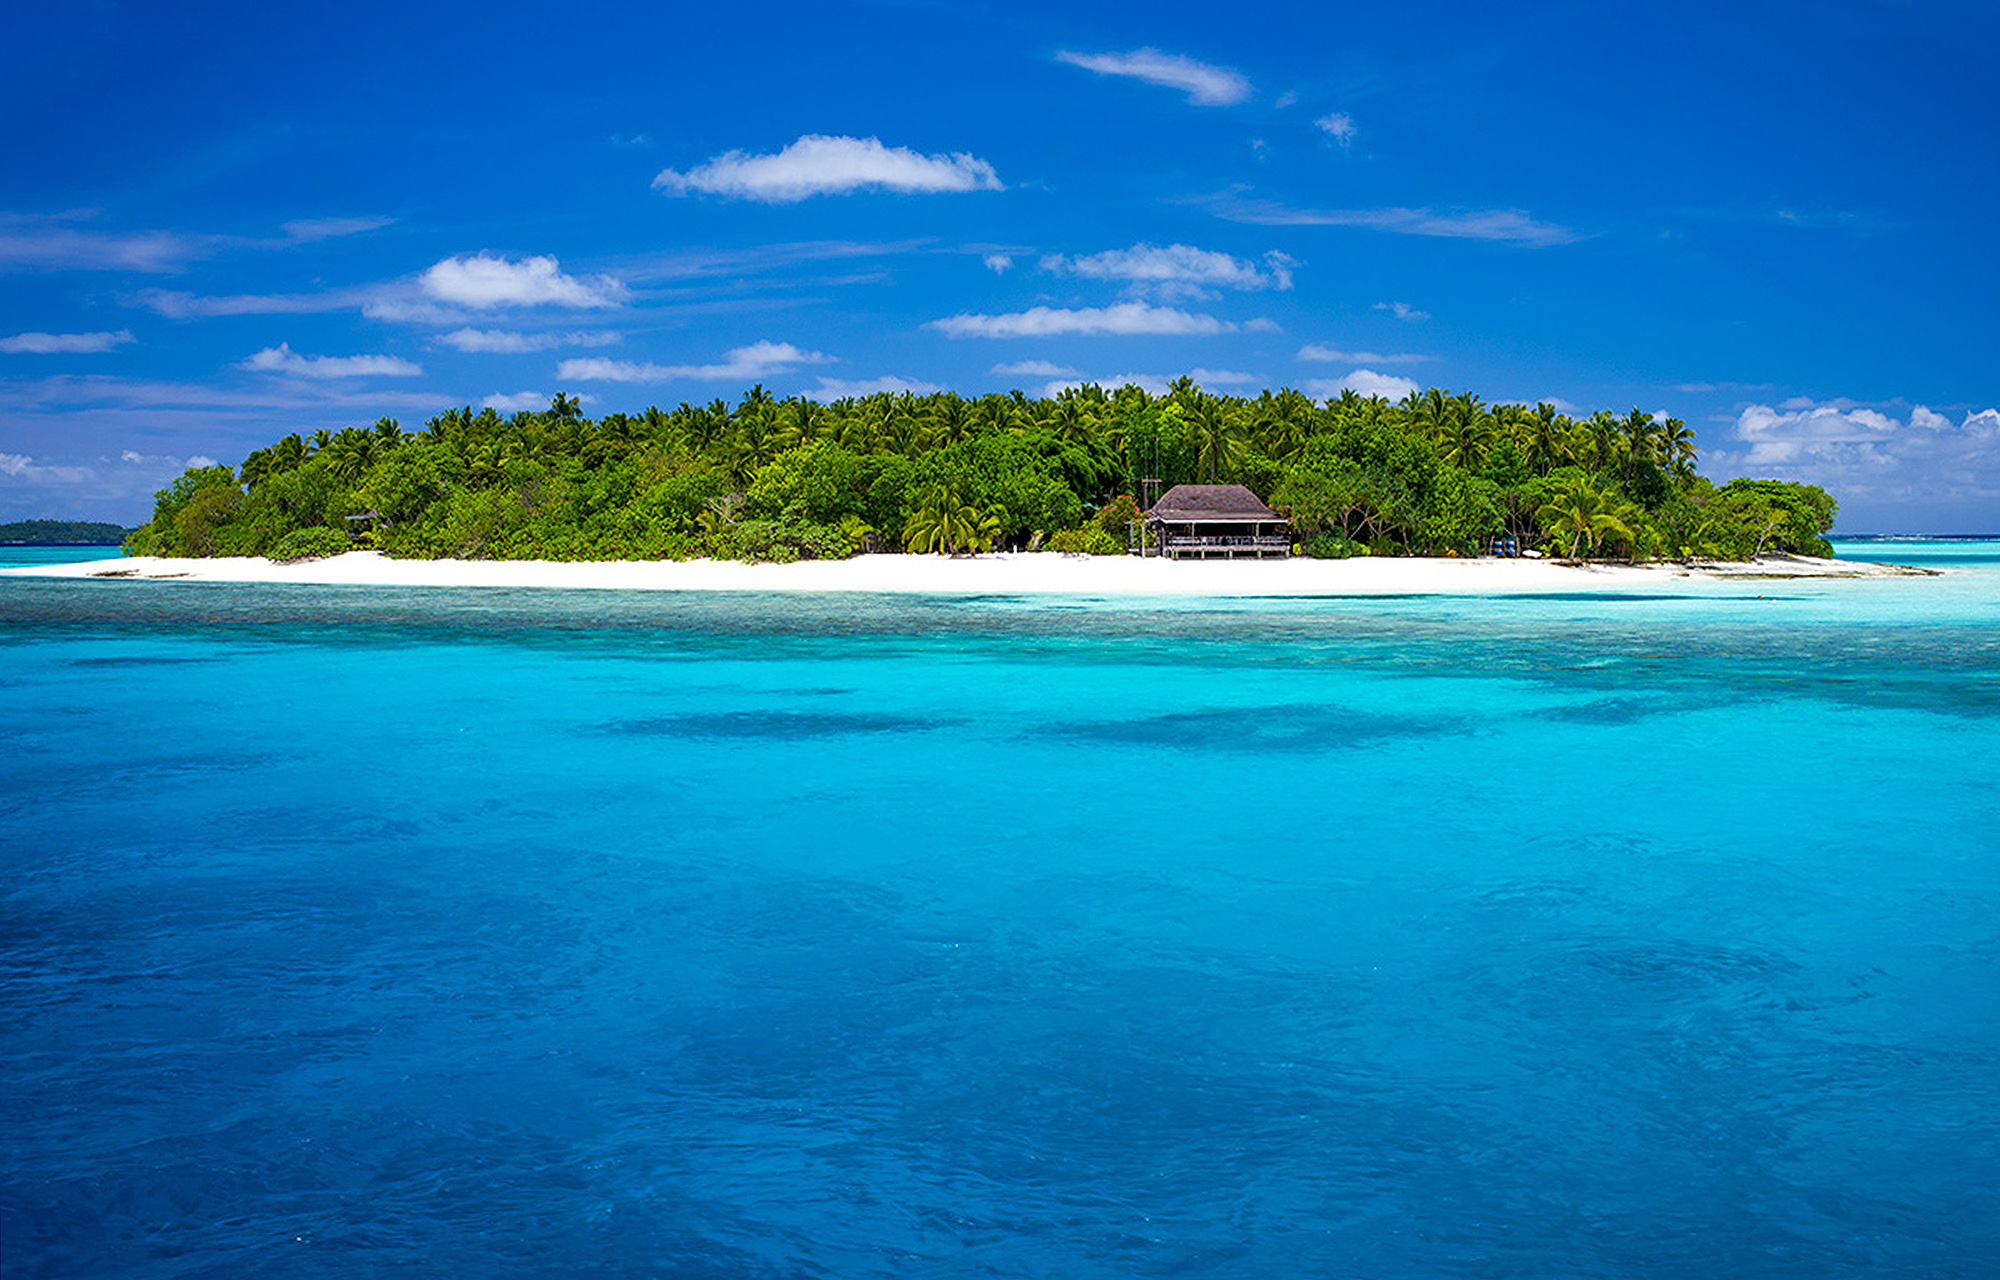 An island in the sea with white sand beach, a thatched house nestled in the trees by the beach